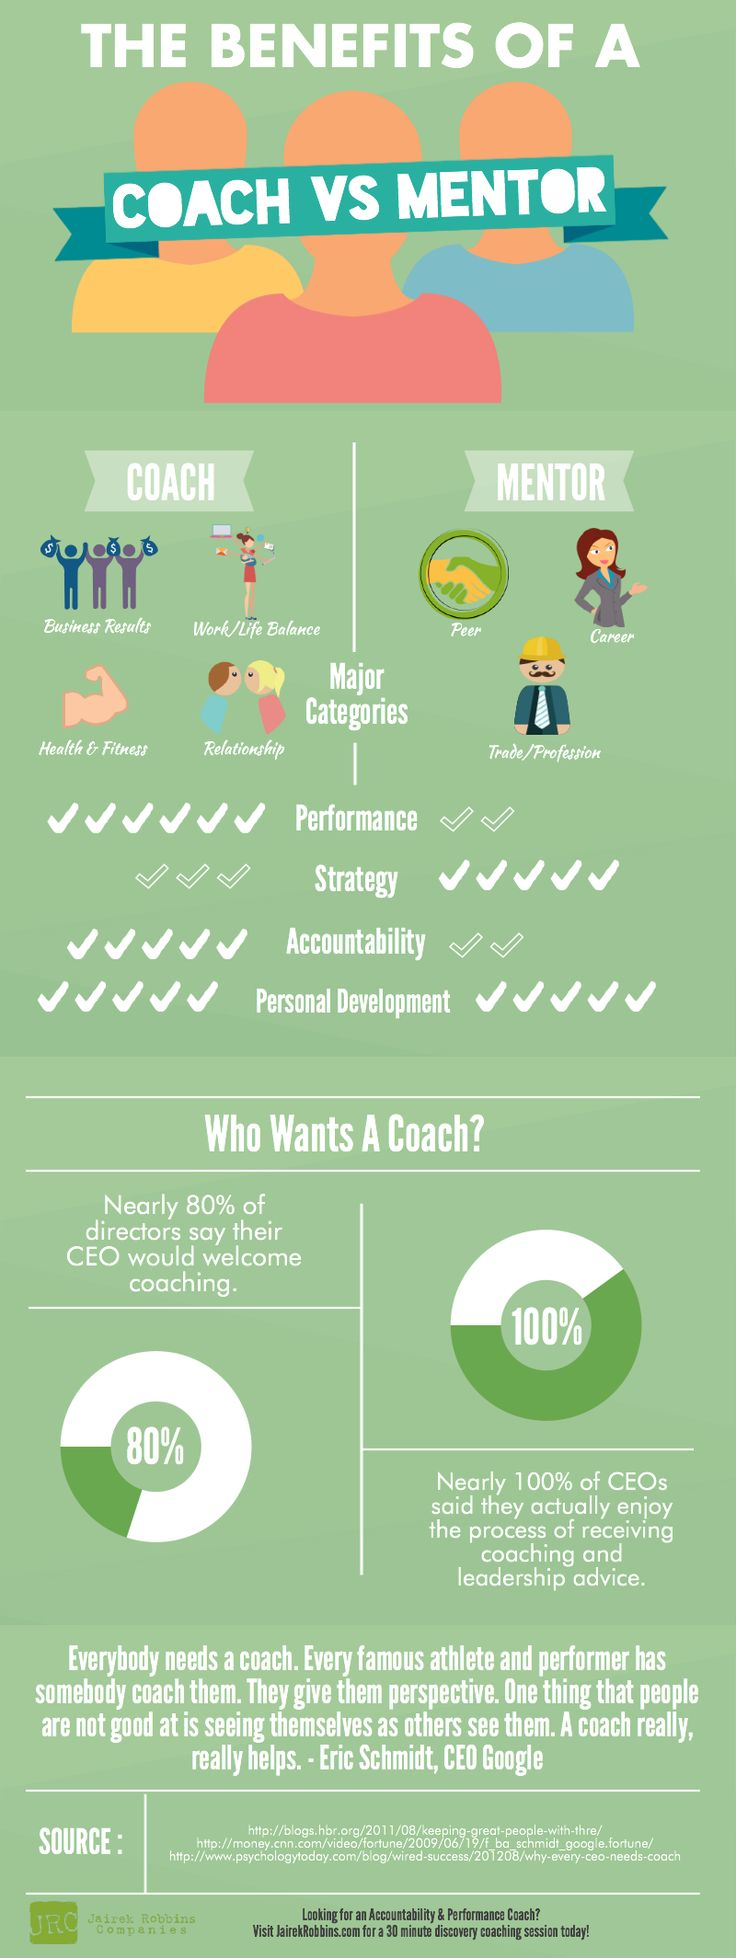 The Benefits Of A Beautiful Balcony Garden: Benefits Of A Coach Vs Mentor. Best Way To Have More